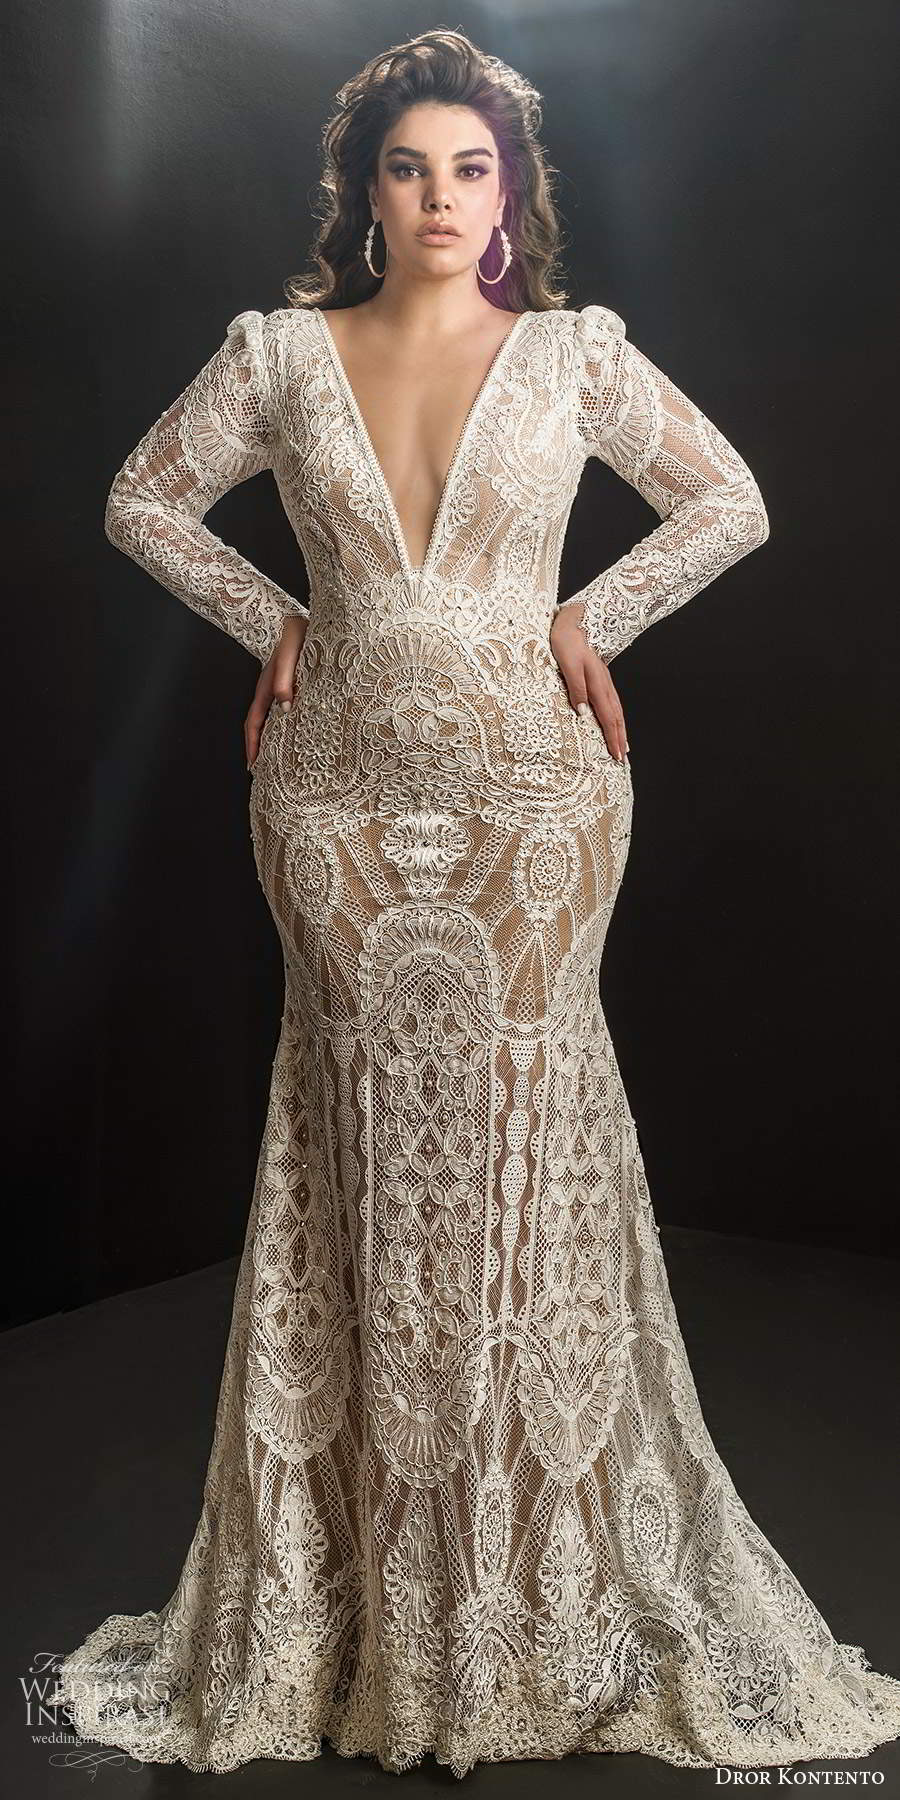 dror kontento 2019 bridal illusion long puff sleeves plunging v neckline fully embellished lace fit flare mermaid wedding dress chapel train (1) mv